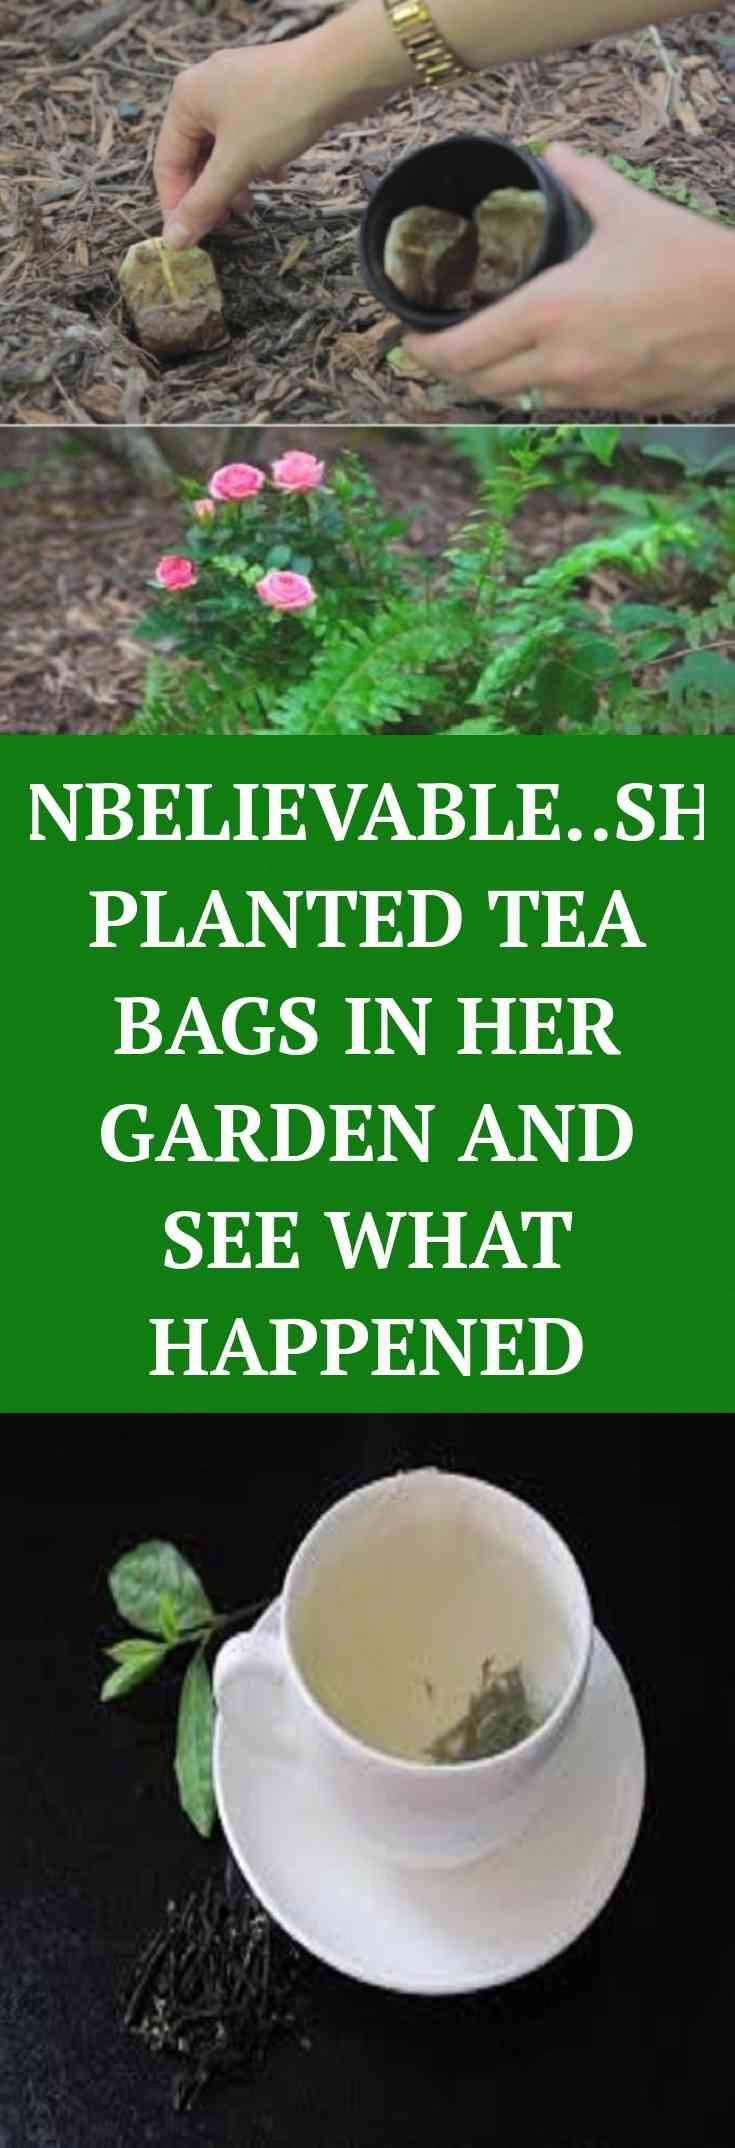 Read. Read information on SHE PLANTED THESE TEA BAGS IN HER GARDEN Every woman should know.  Great....